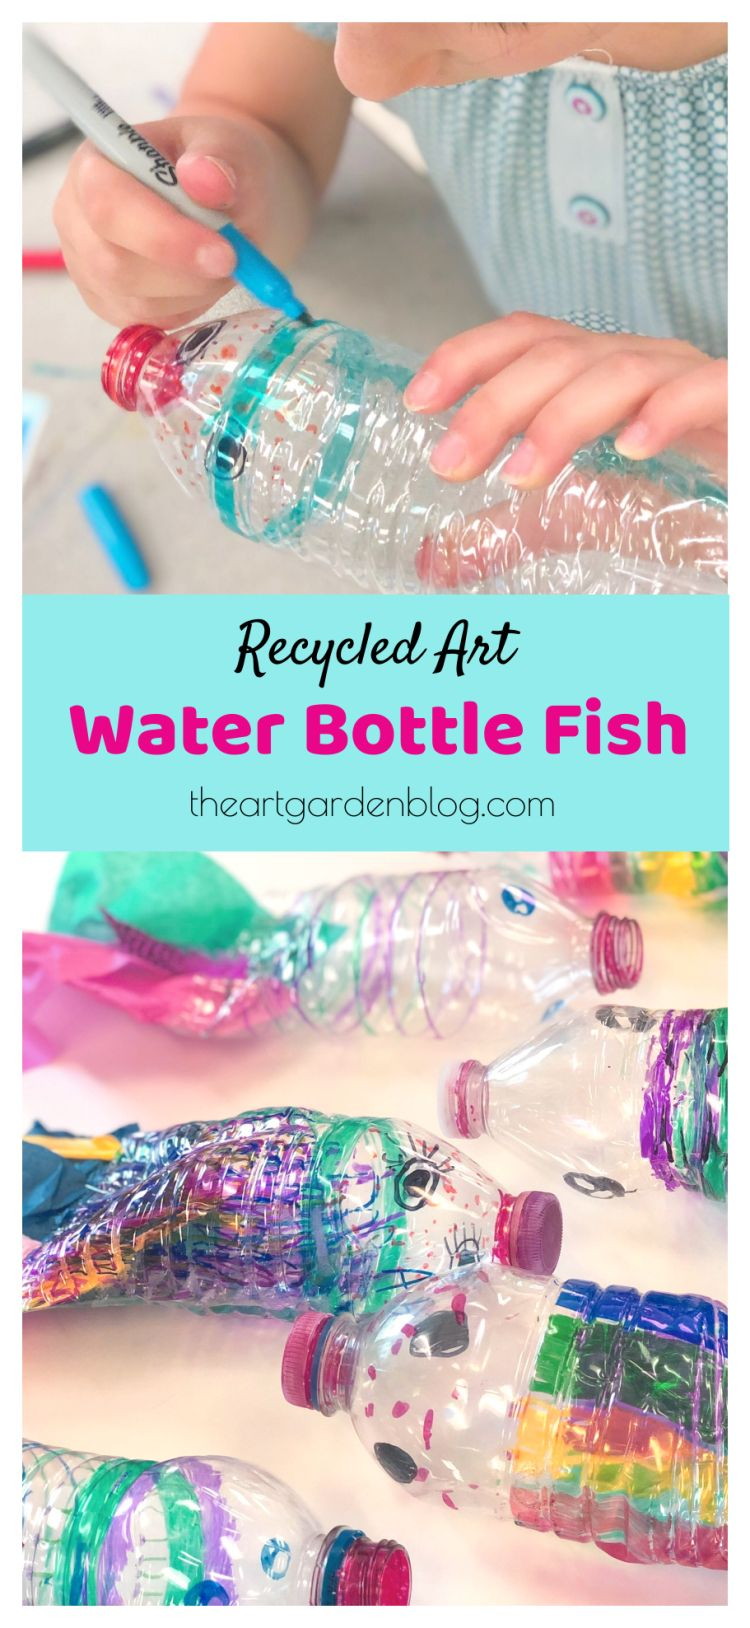 Recycled Art Project: Water Bottle Fish